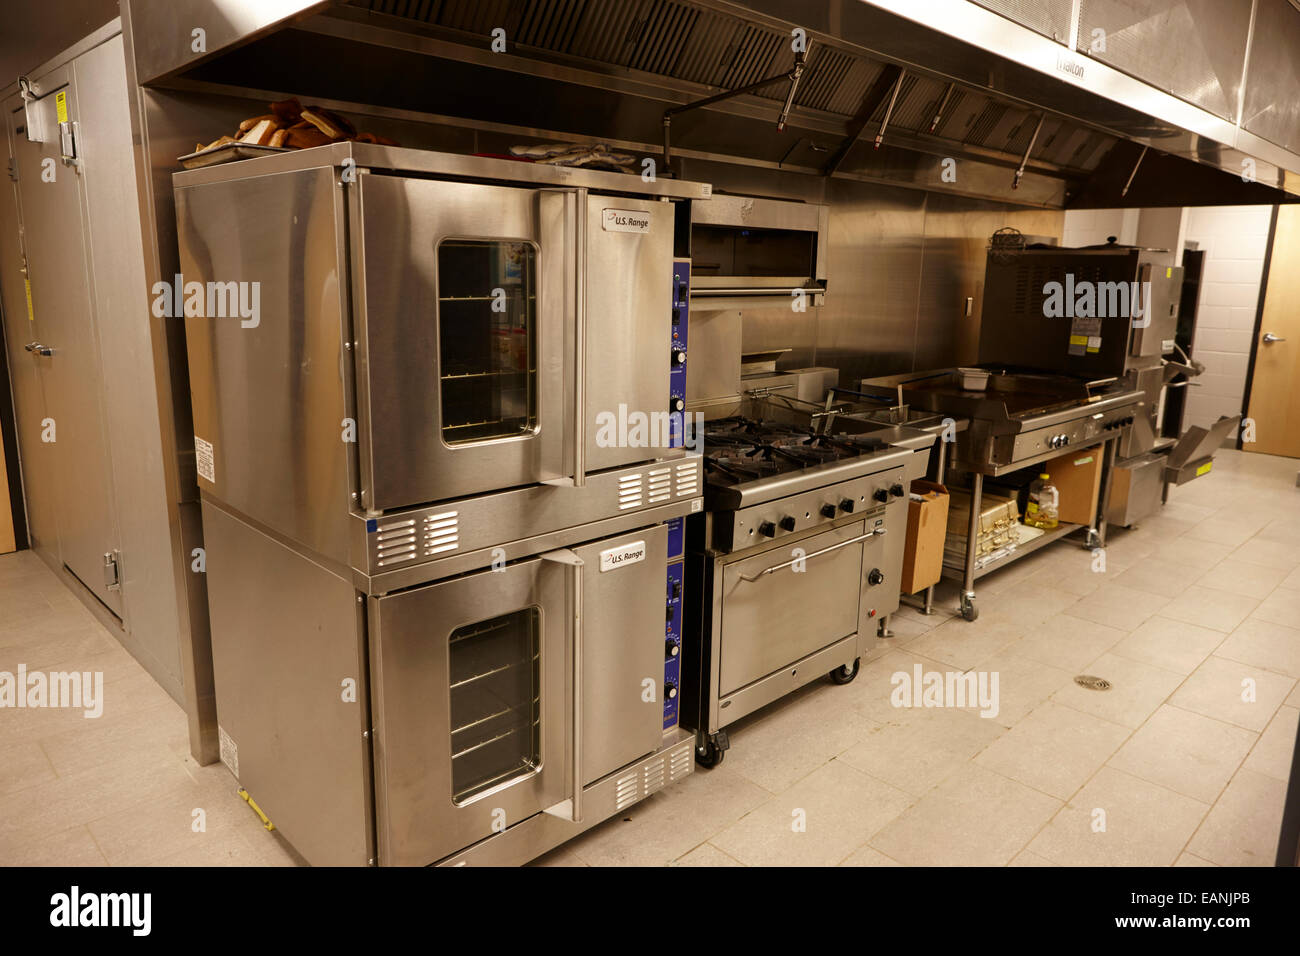 grills and ovens in a north american high school canteen - Stock Image